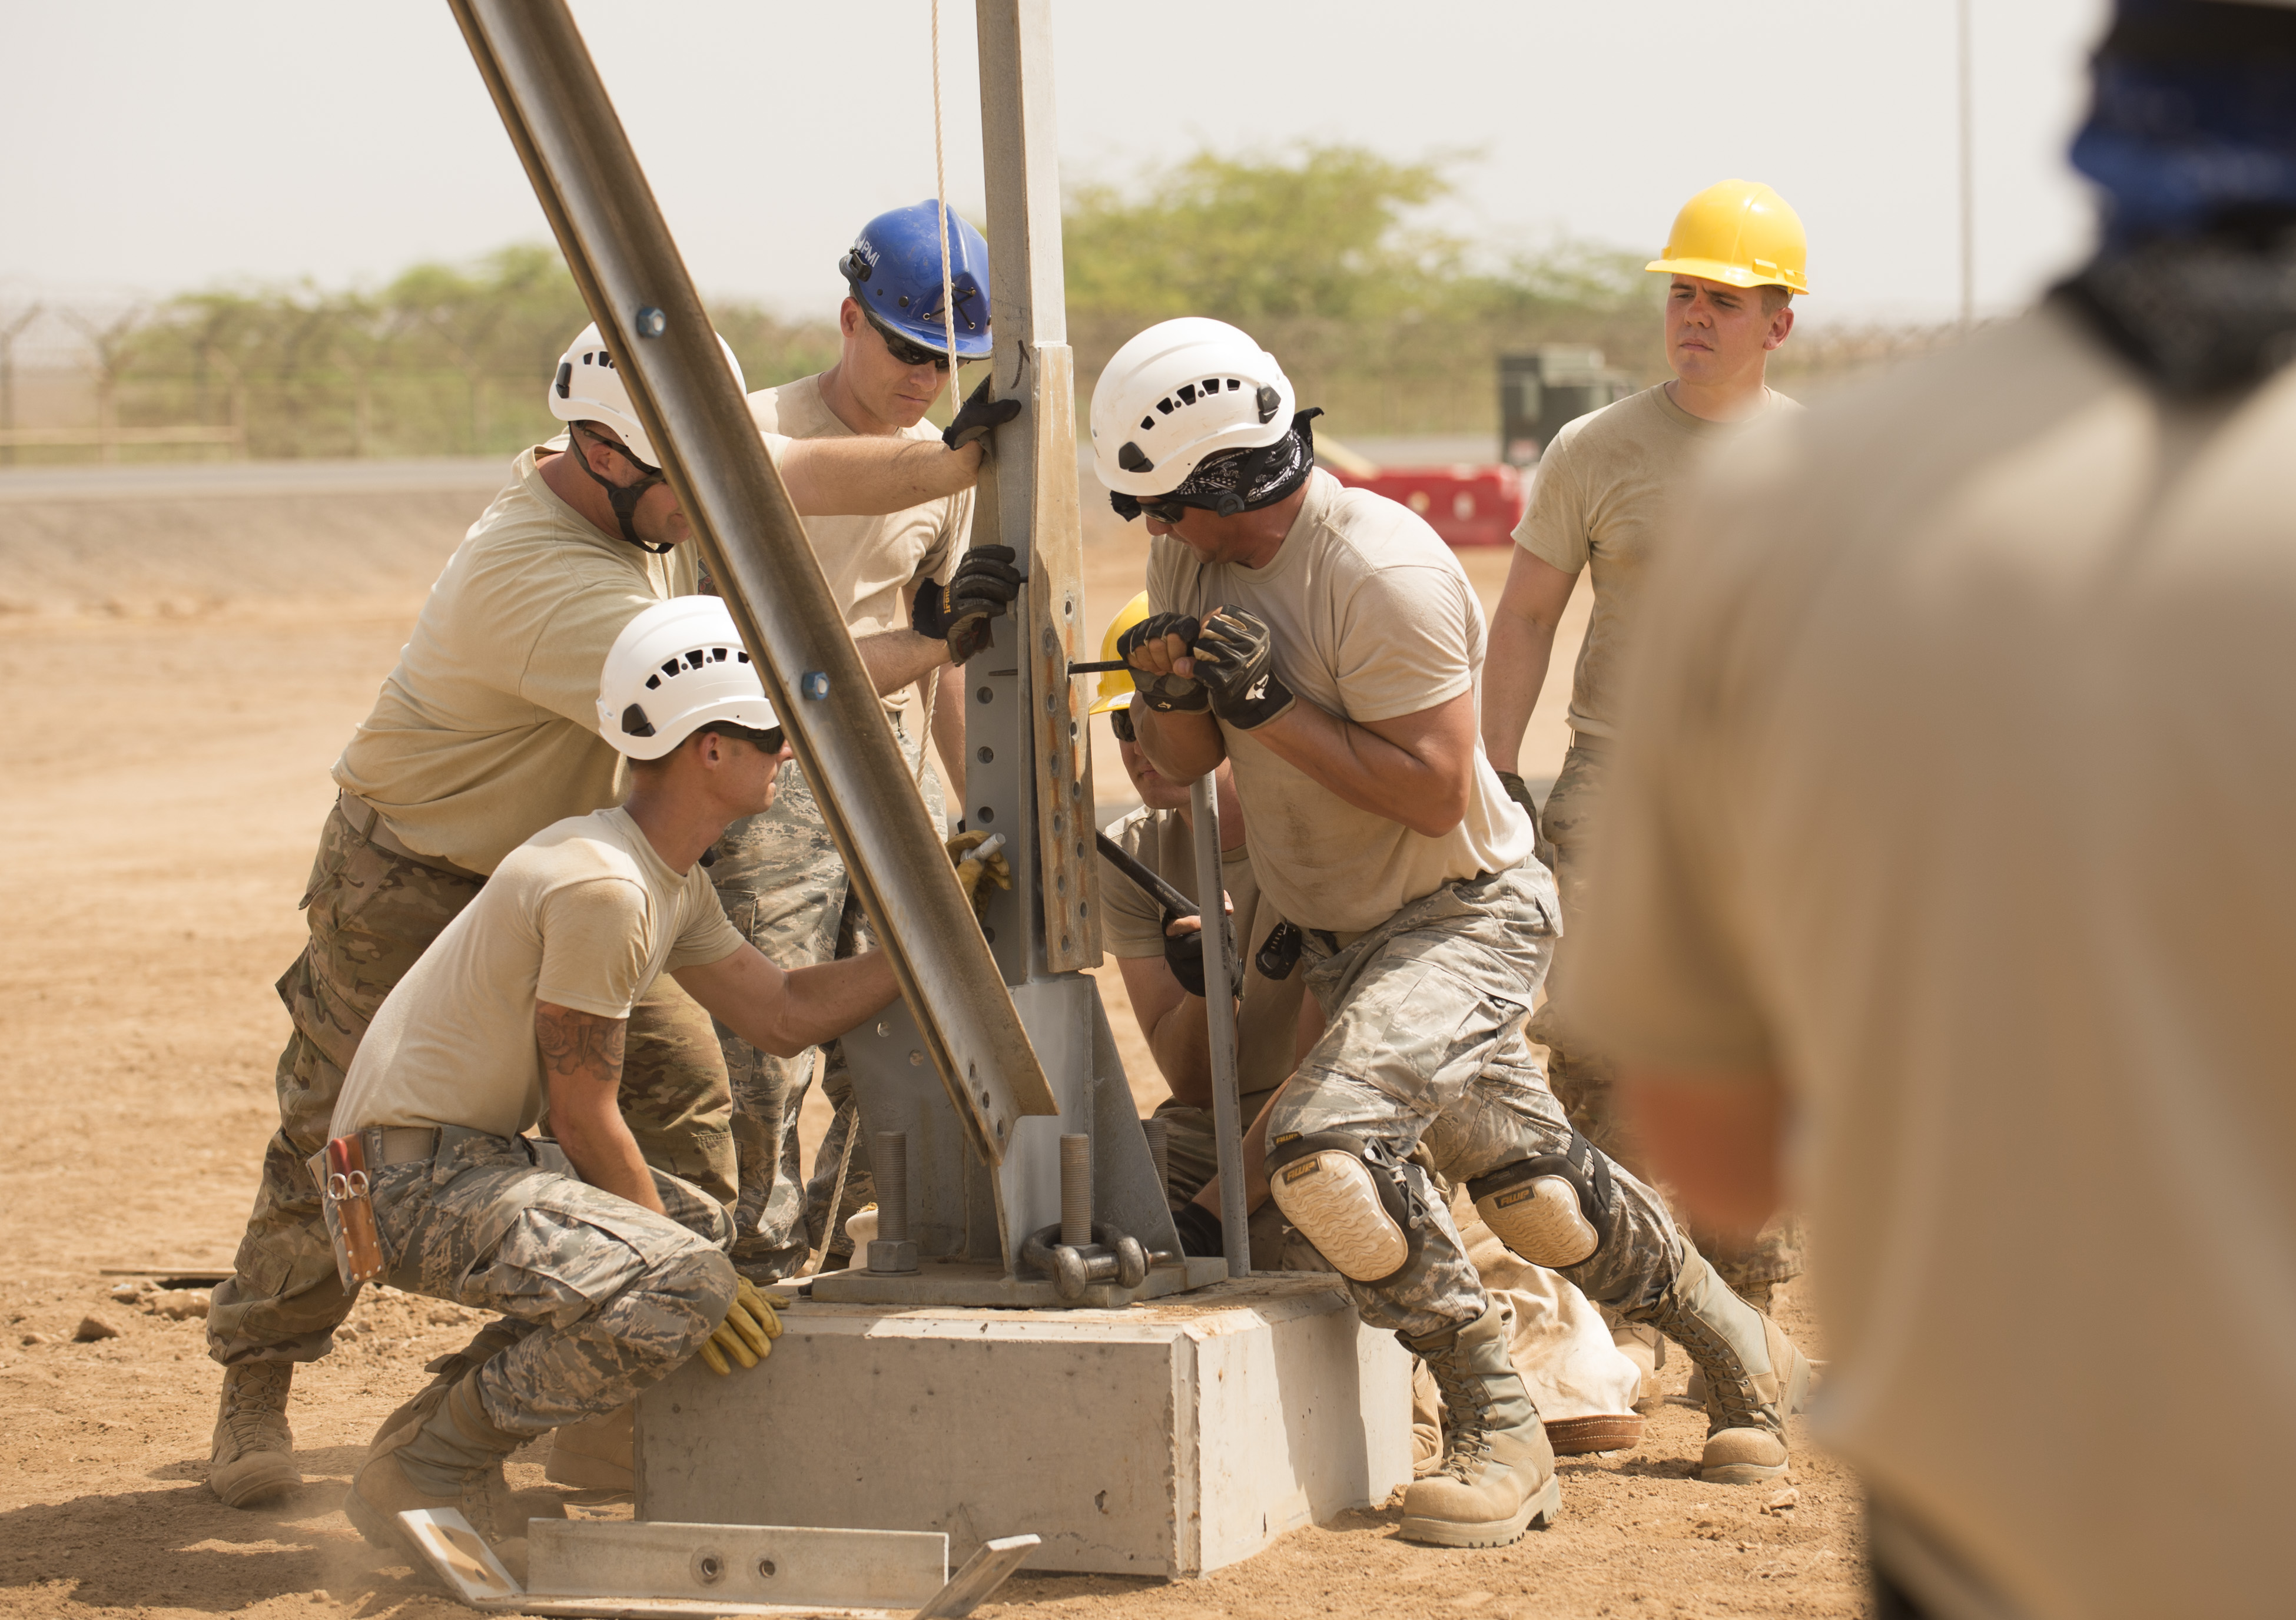 CAMP LEMONNIER, Djibouti- U.S. Air Force Airmen of the 205th Engineering Installation Squadron, out of Oklahoma City, line up pieces of the metal frame during construction of an AN/GPN-27 Airport Surveillance Radar System tower, May 26, 2016, at Camp Lemonnier, Djibouti. The new radar is a more permanent replacement for the short-term radar currently in operation. (U.S. Air Force photo by Staff Sgt. Tiffany DeNault)